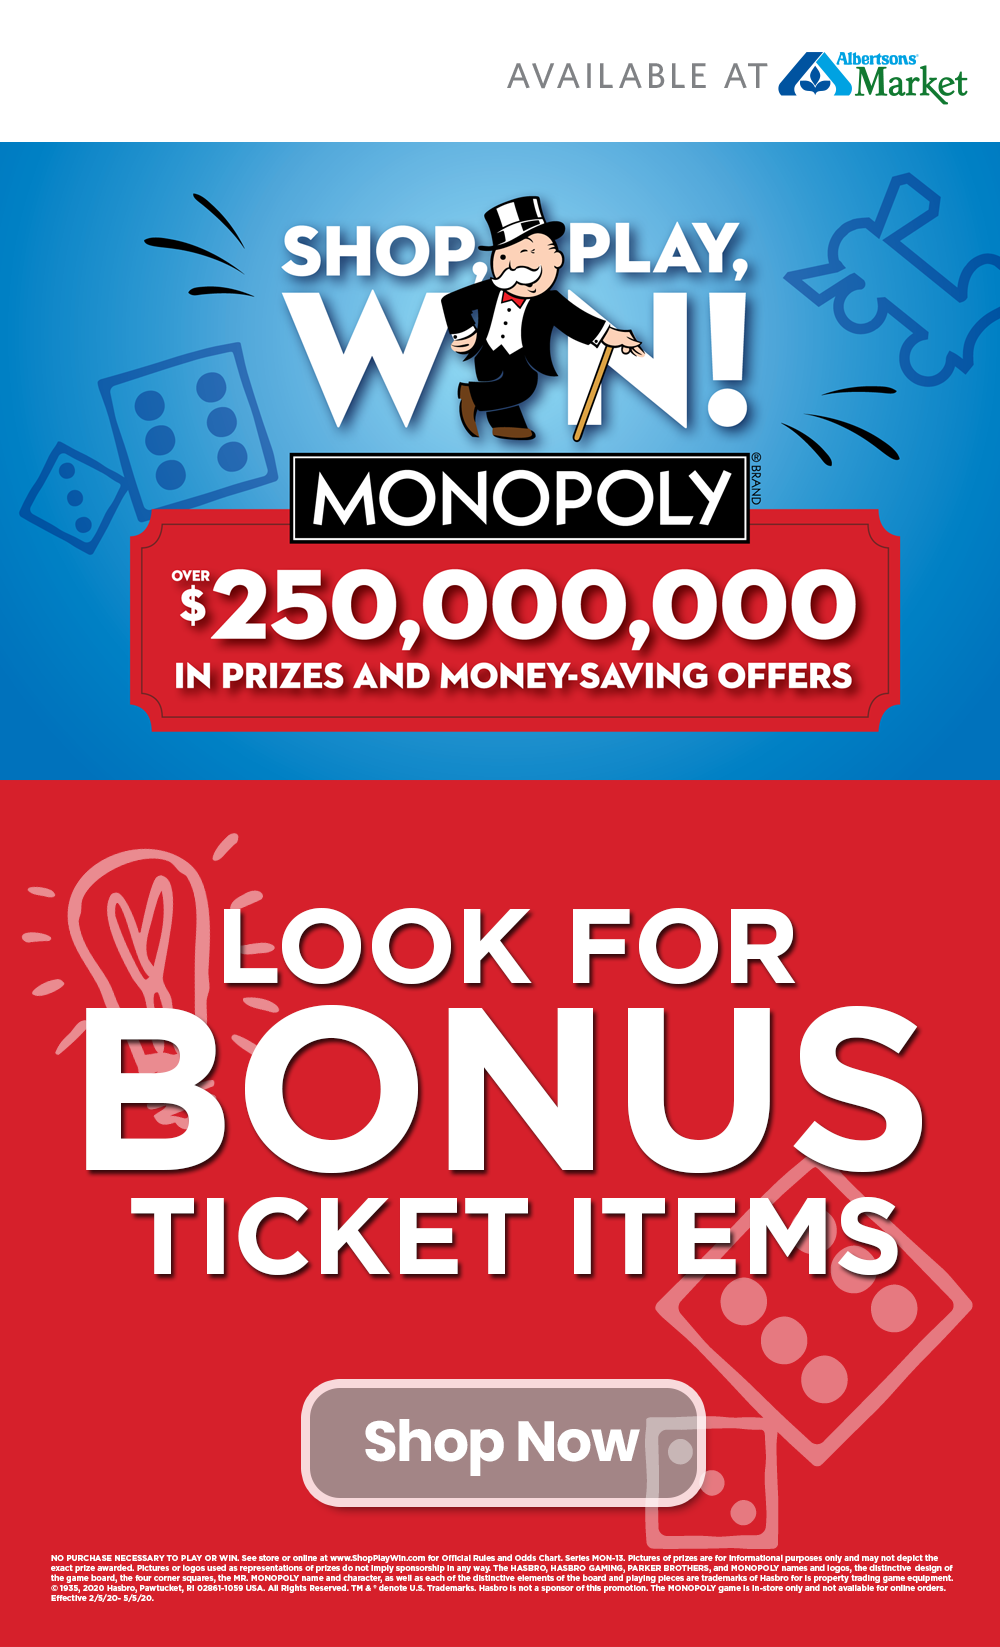 Shop, Play, Win® MONOPOLY is back at Albertsons with 4